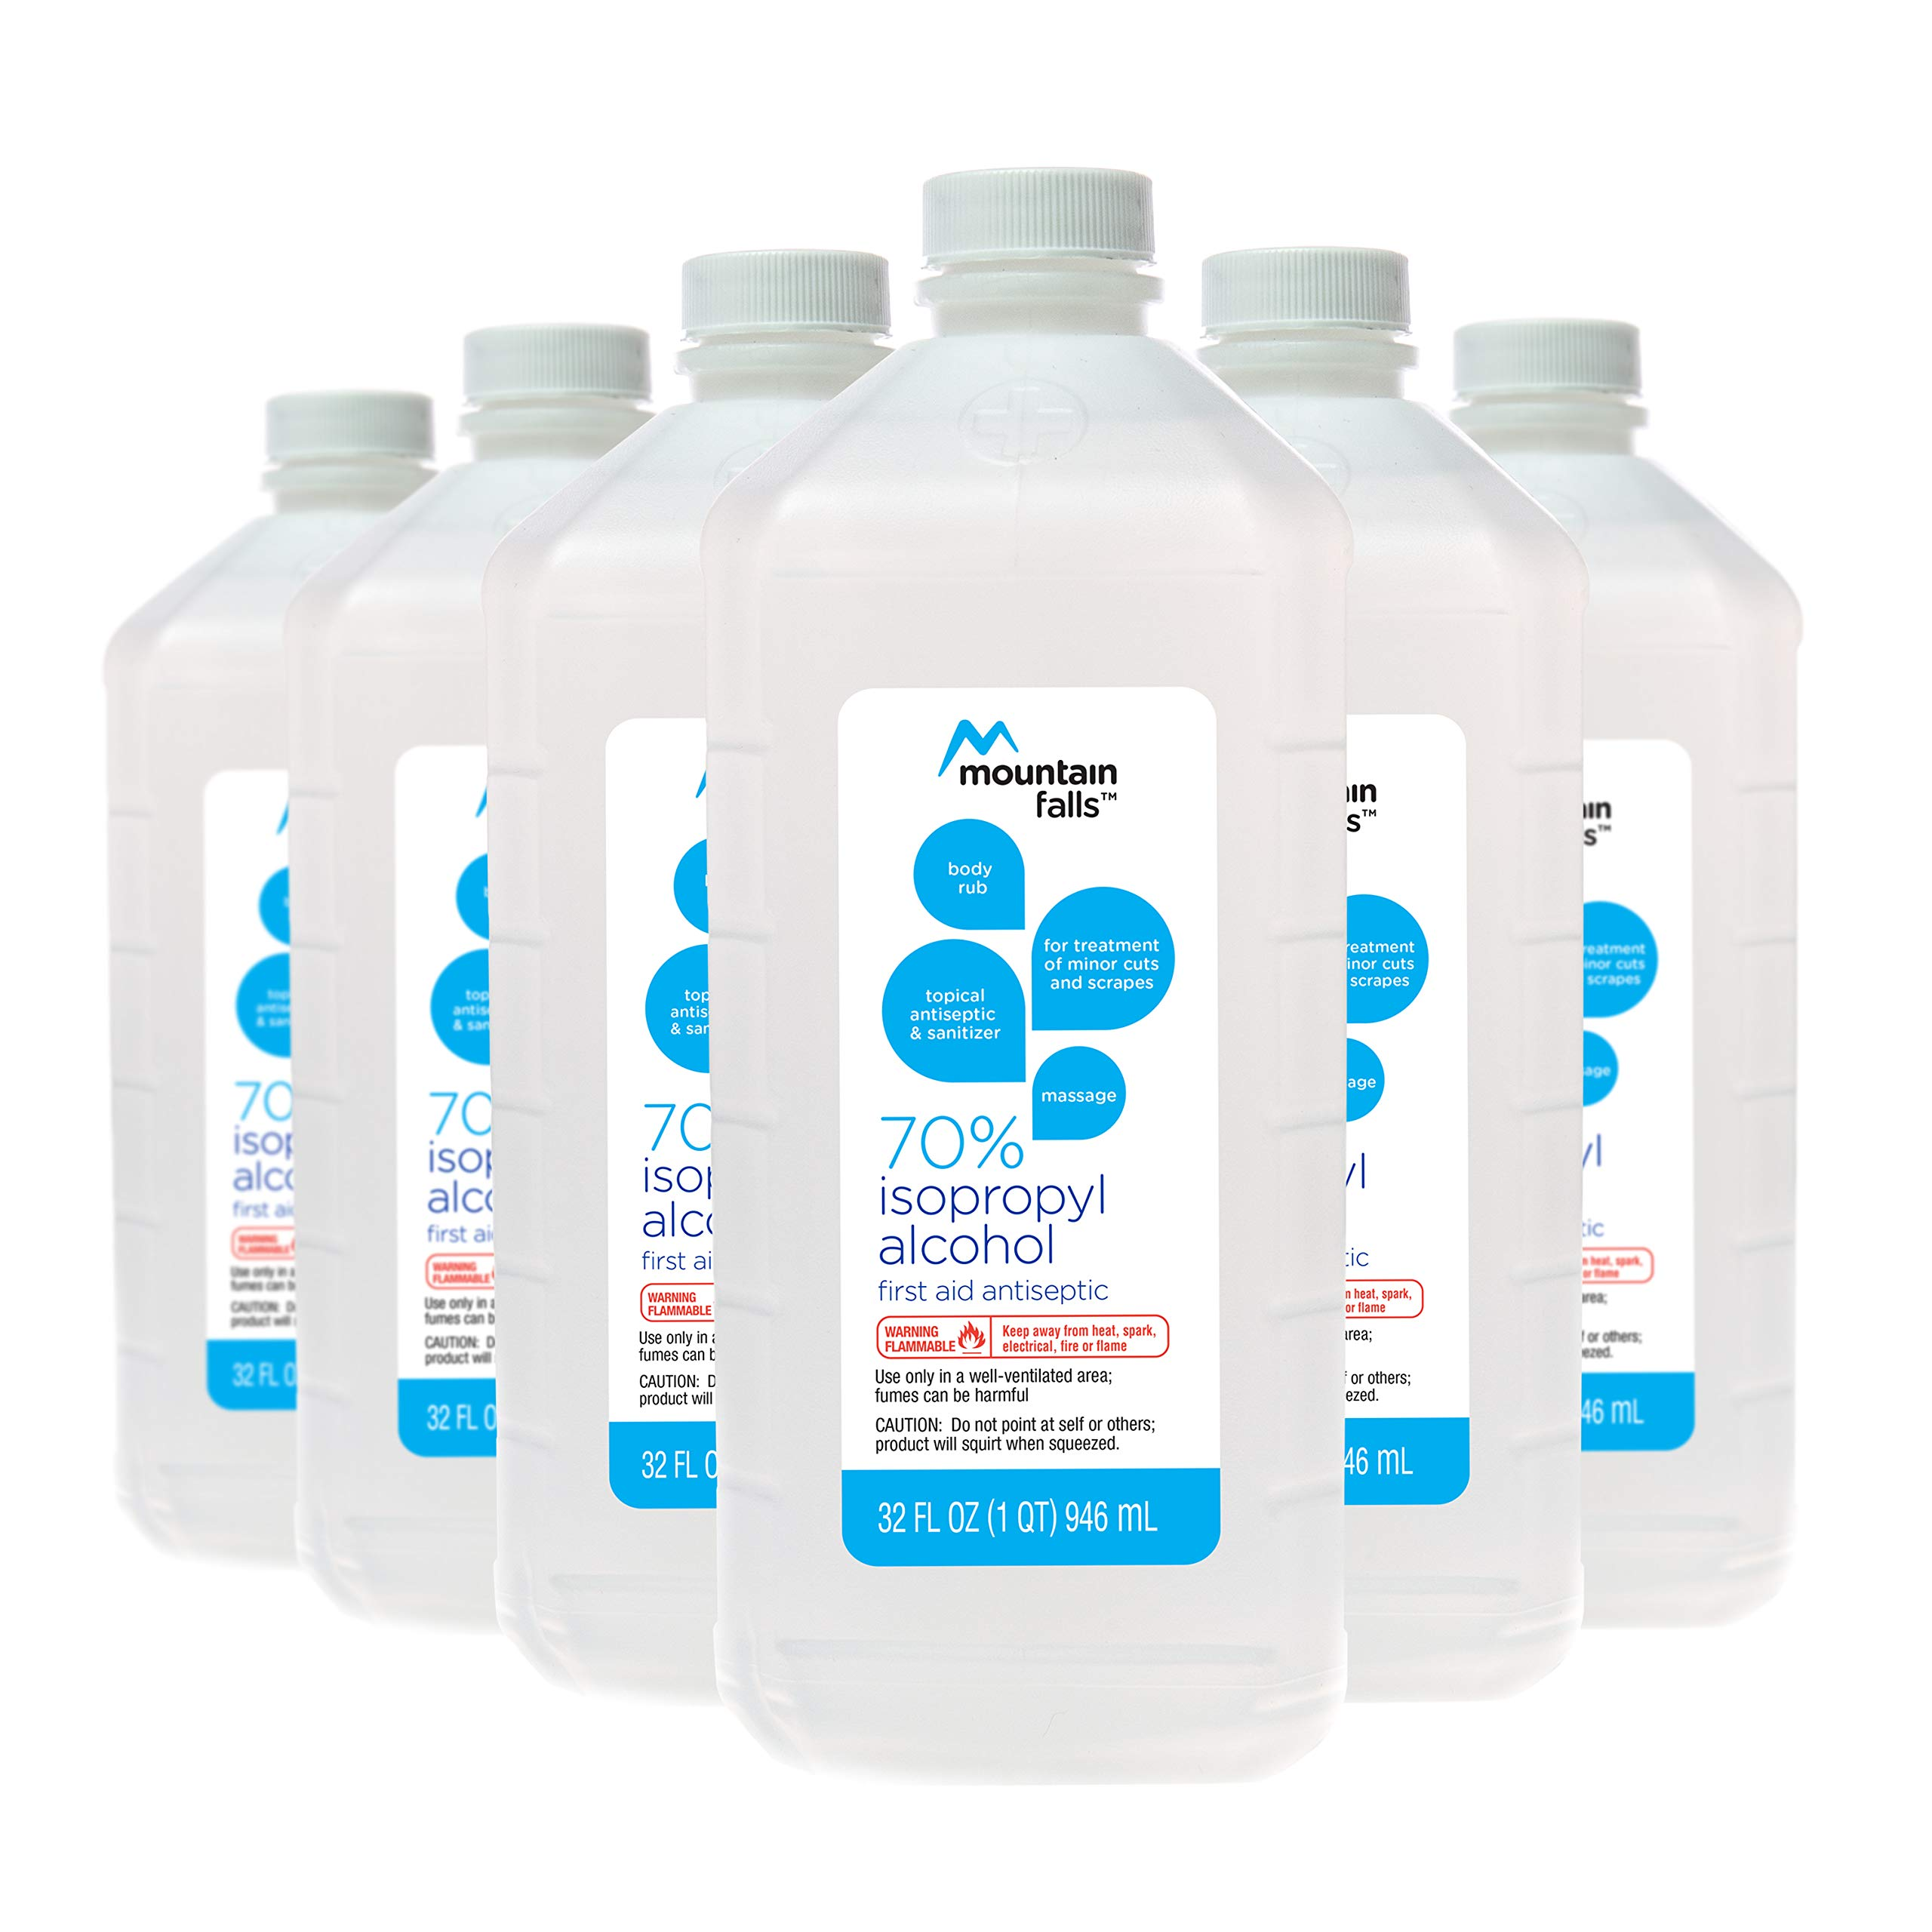 Mountain Falls 70% Isopropyl Alcohol First Aid Antiseptic for Treatment of Minor Cuts and Scrapes, 32 Fluid Ounce (Pack of 6)